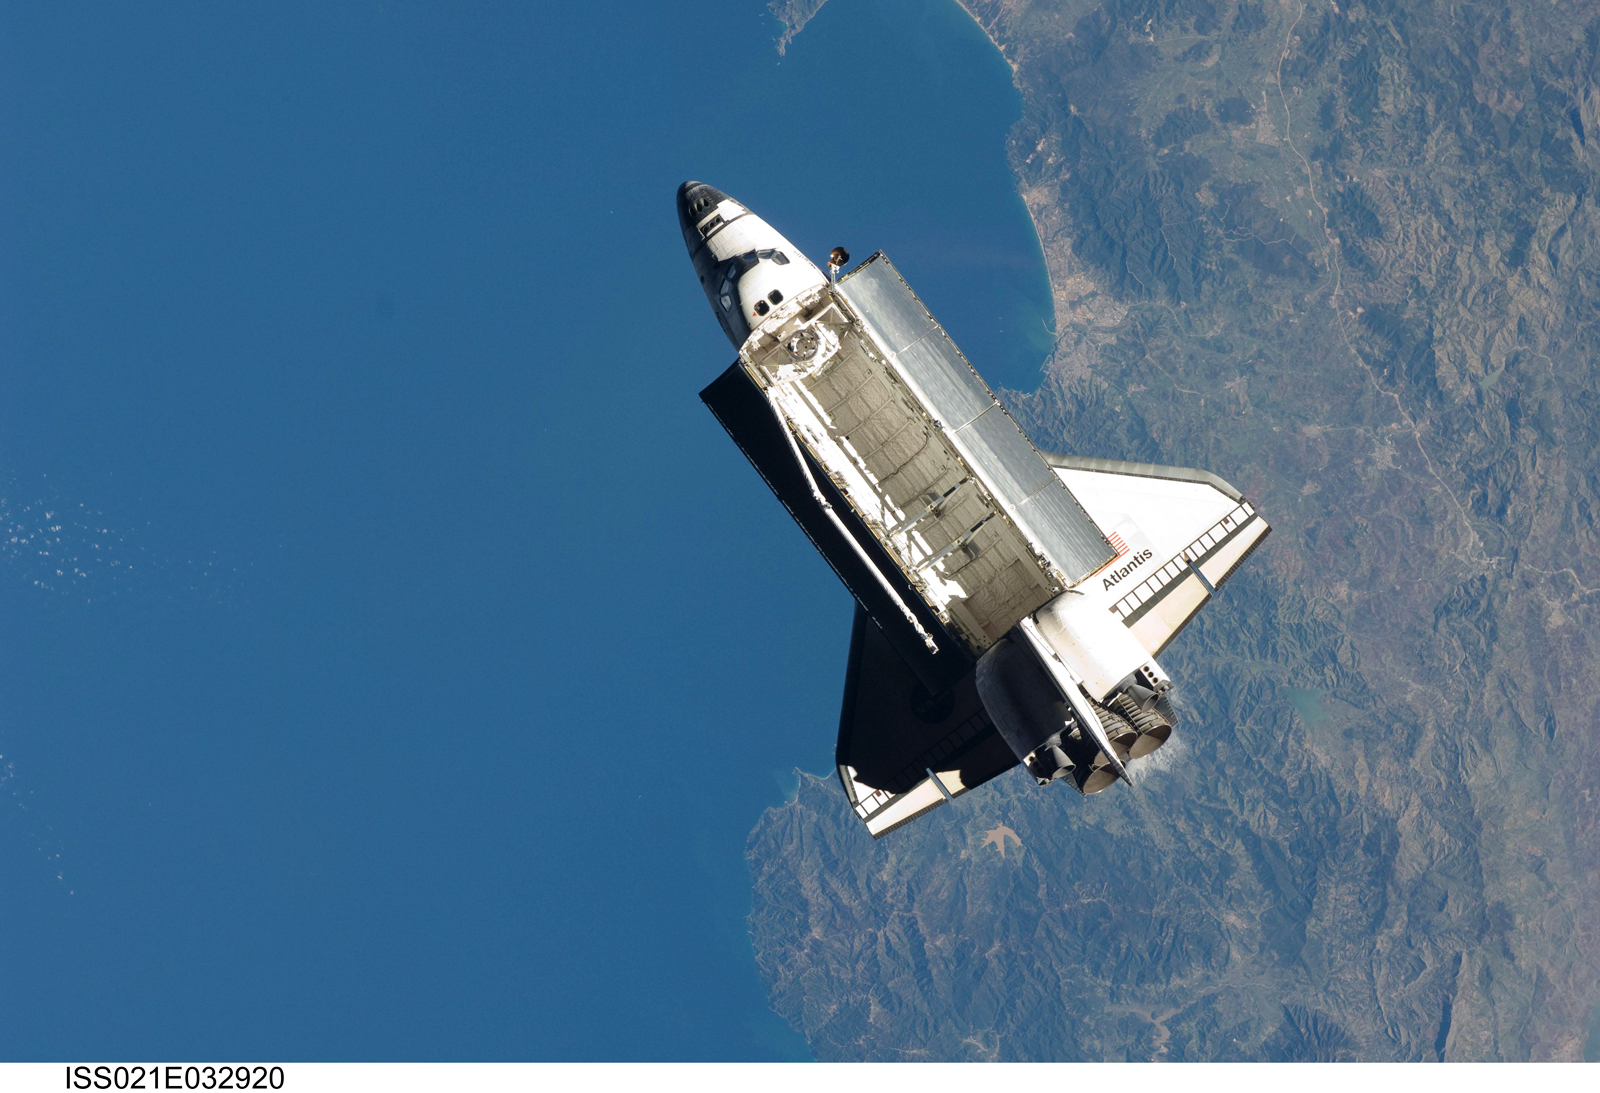 space shuttle space background - photo #41